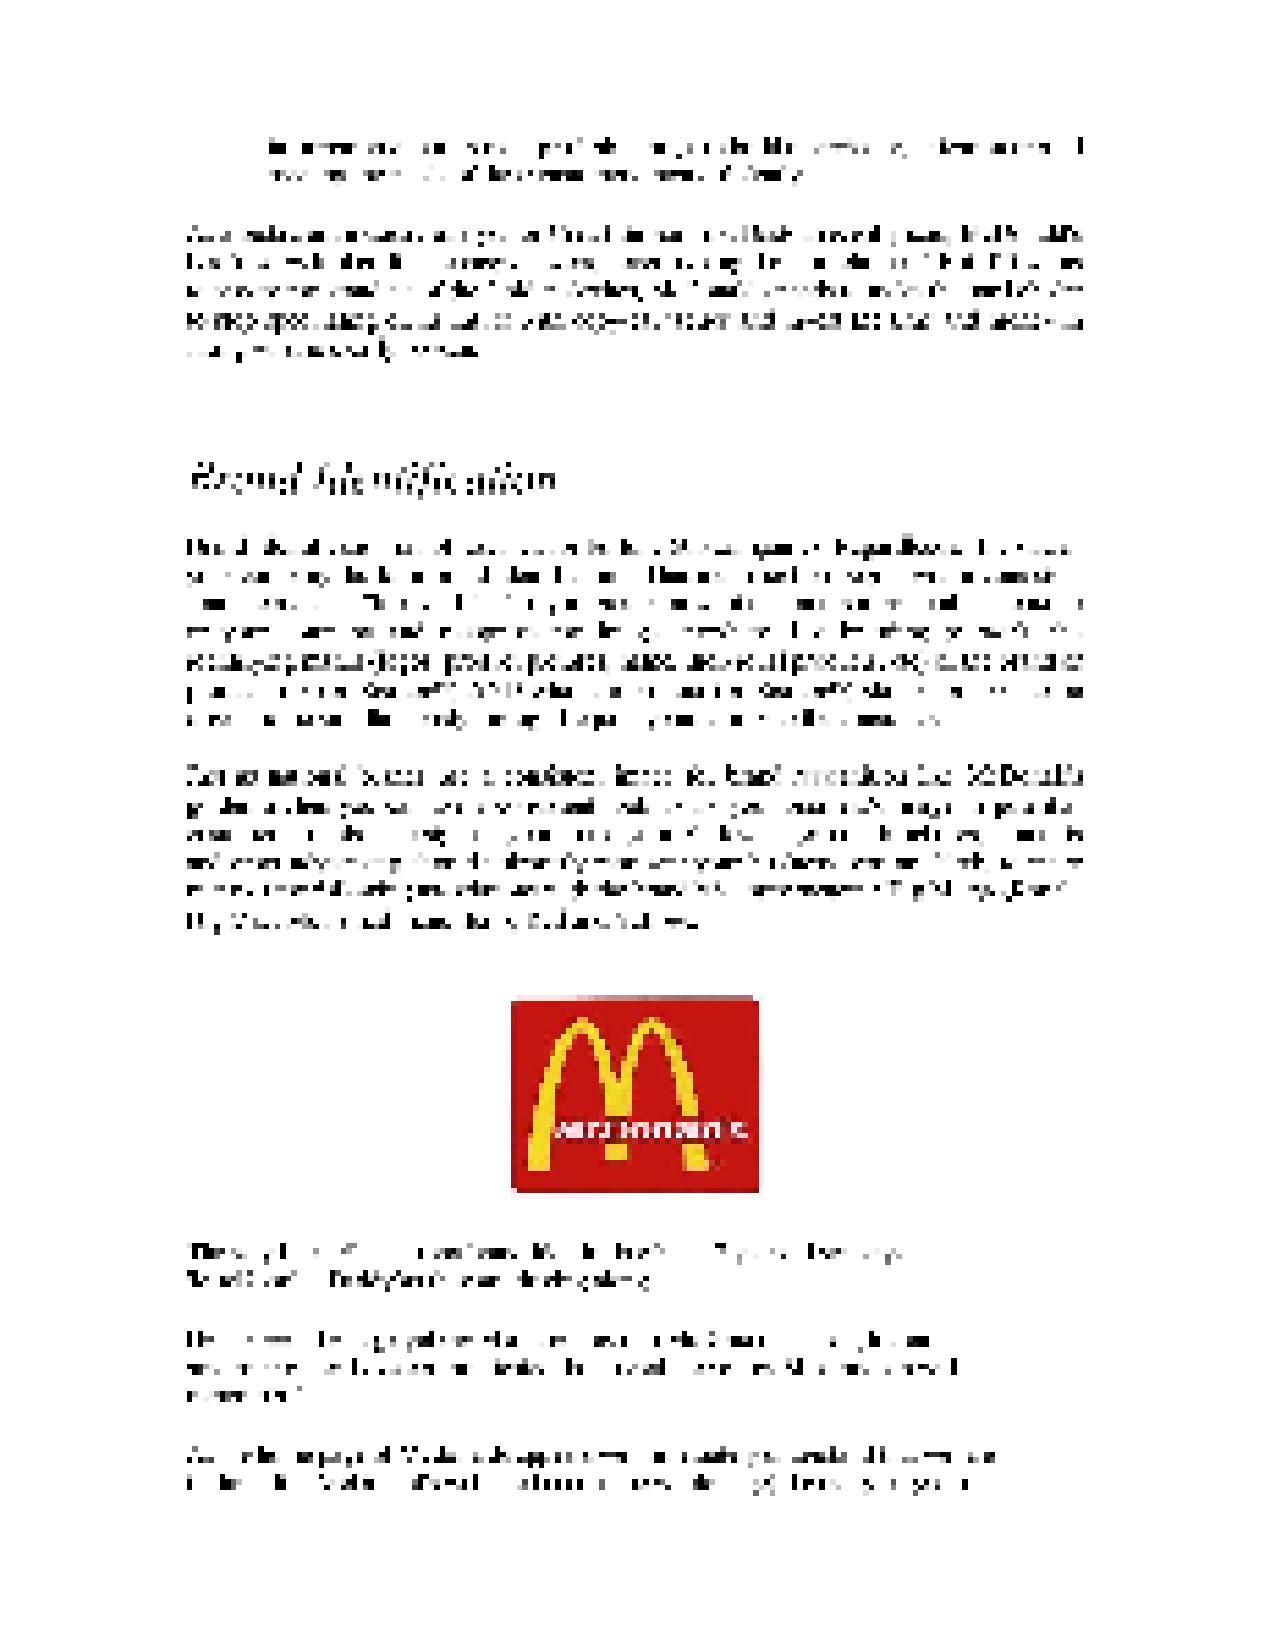 relationship marketing by mcdonalds marketing essay Burger king uses its marketing mix (4ps) as a response to the dynamic and saturated condition of the global quick service restaurant industry the marketing mix is a combination of strategies and tactics to effectively implement a marketing plan.